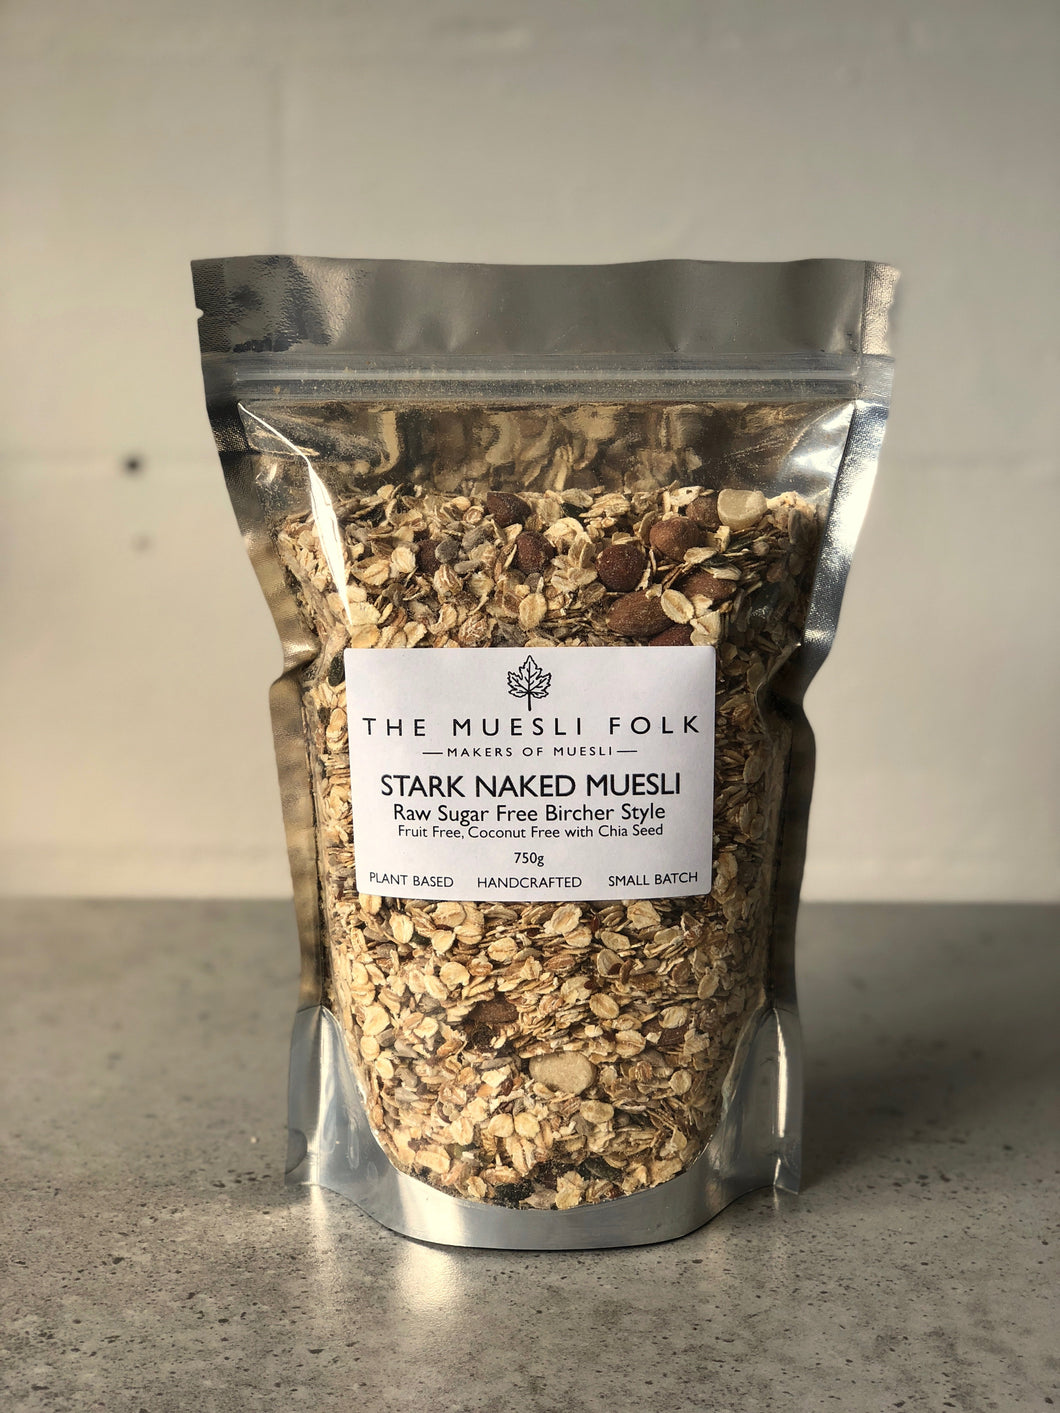 Stark Naked Muesli - The Muesli Folk